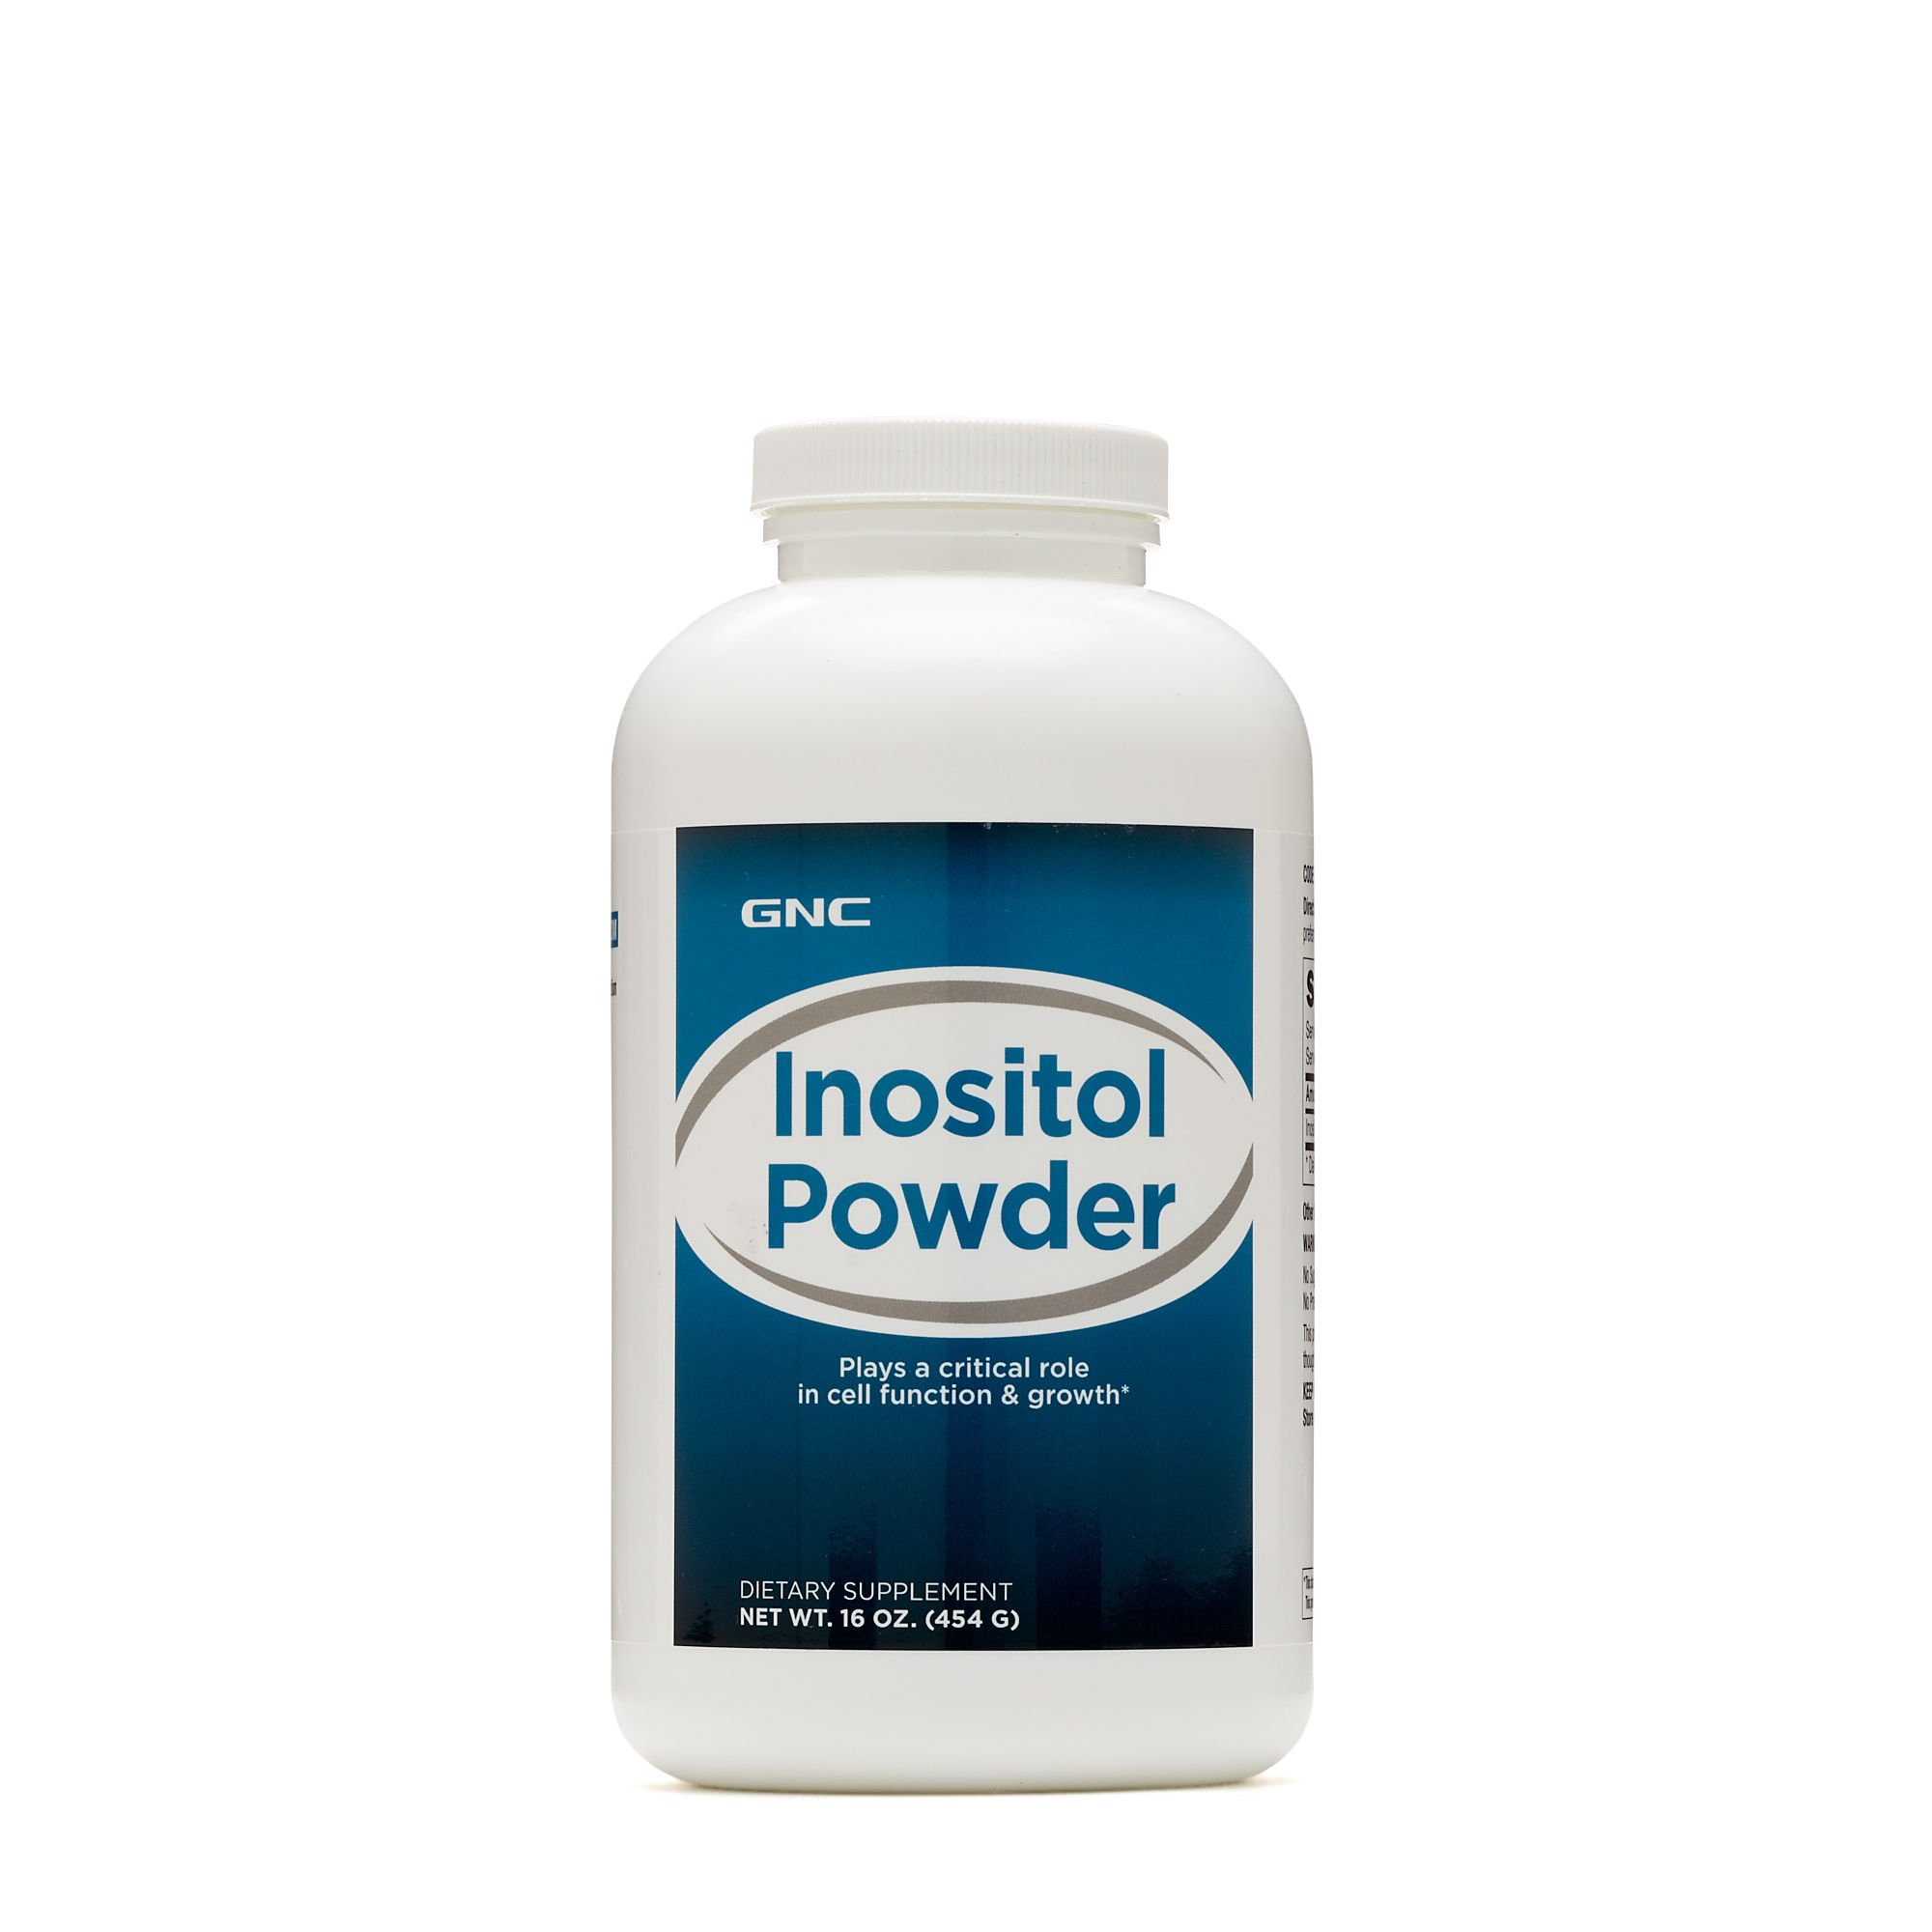 GNC Inositol Powder